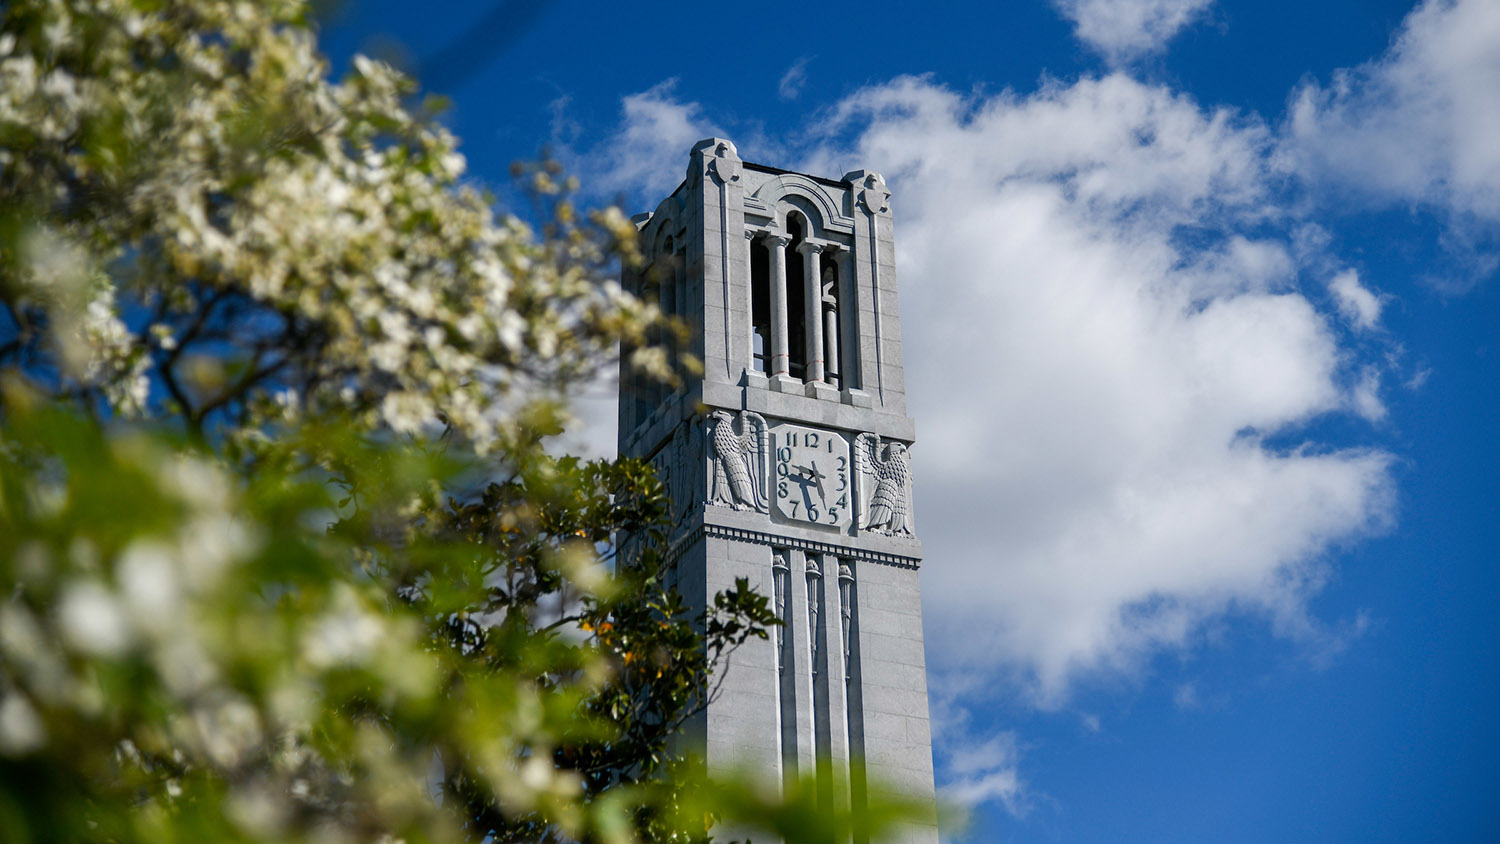 The NC State Belltower against a blue sky, with flowering trees in the foreground